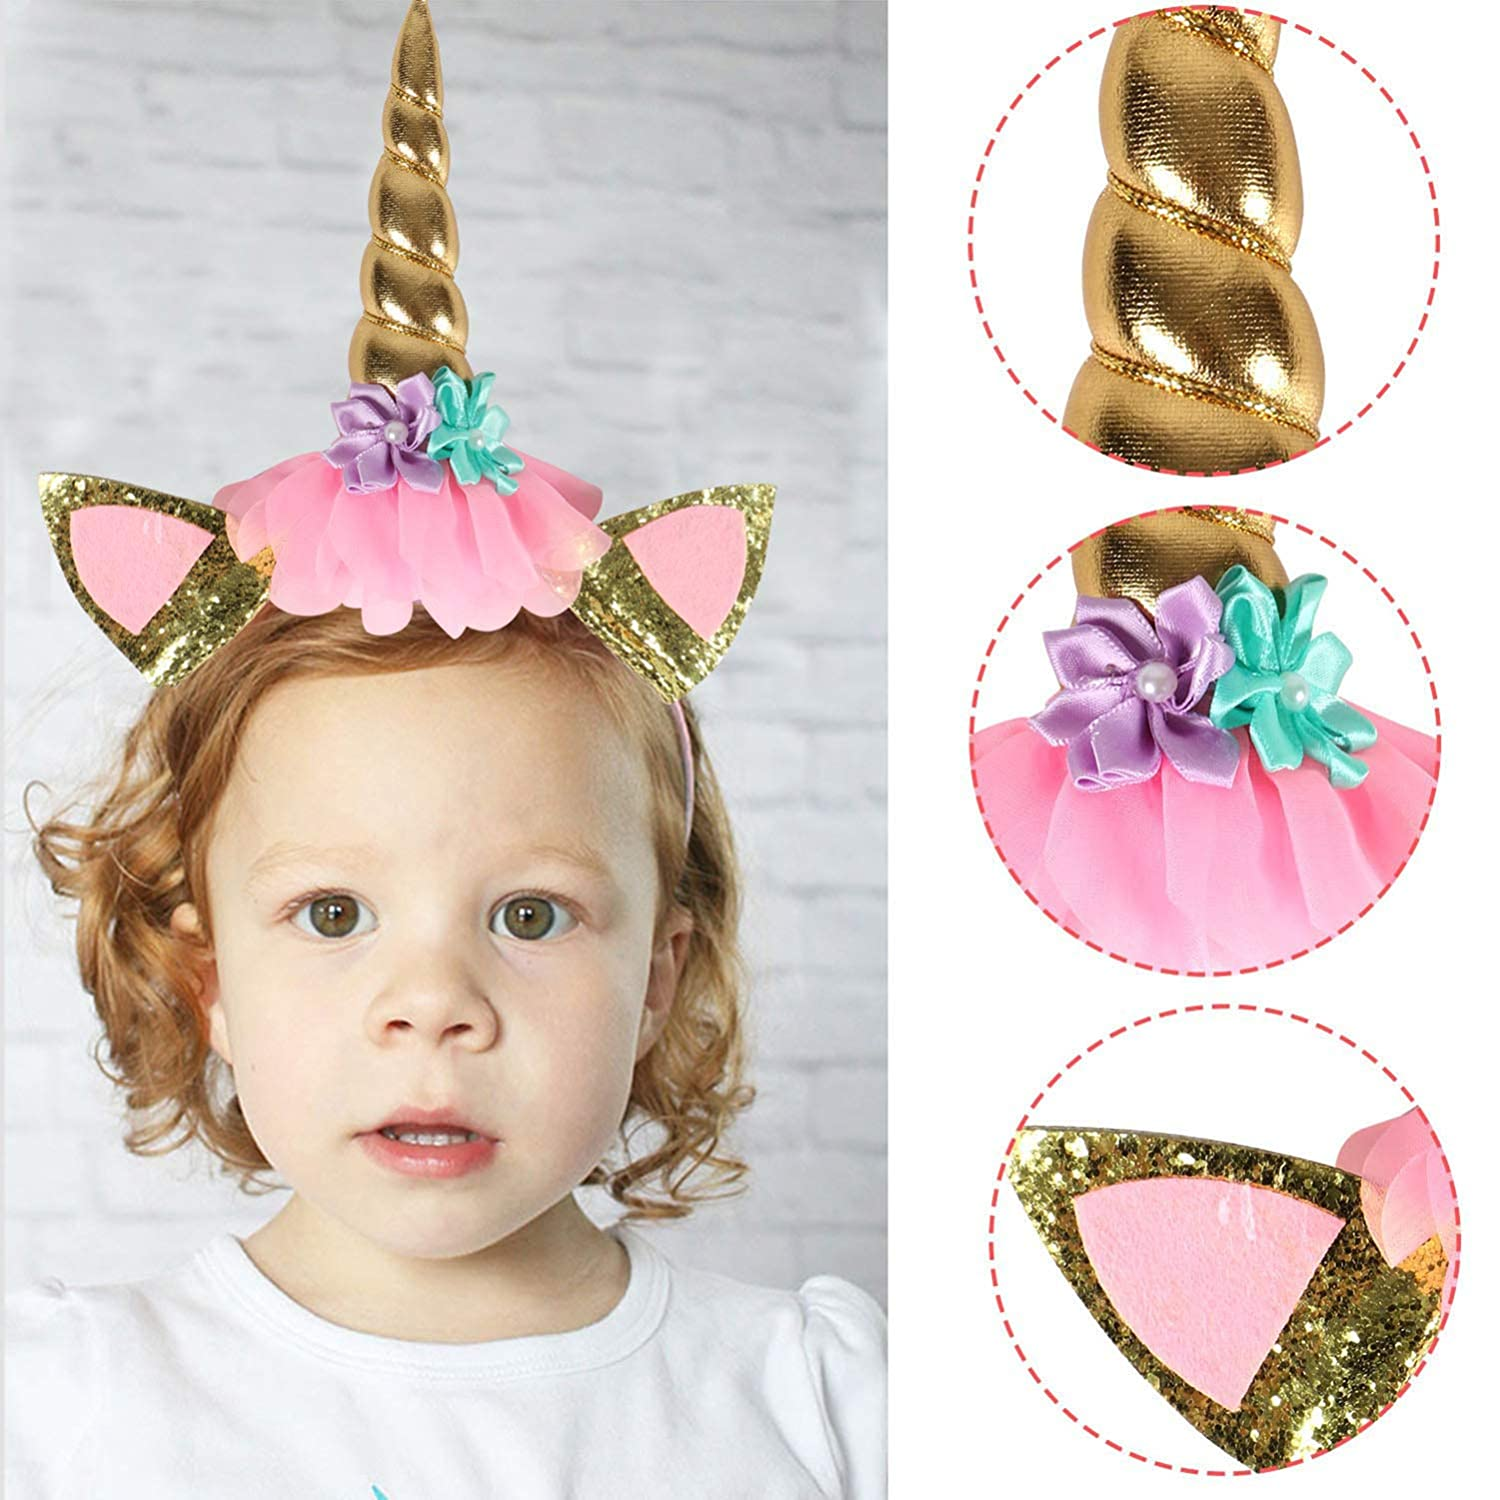 Killow Unicorno Decorazioni Torte Unicorno Toppers Torta Cake Topper+ Compleanno Accessori Cerchietto+48pcs Cupcake Topper Double Sided Decorazioni per Feste di Compleanno Baby Shower